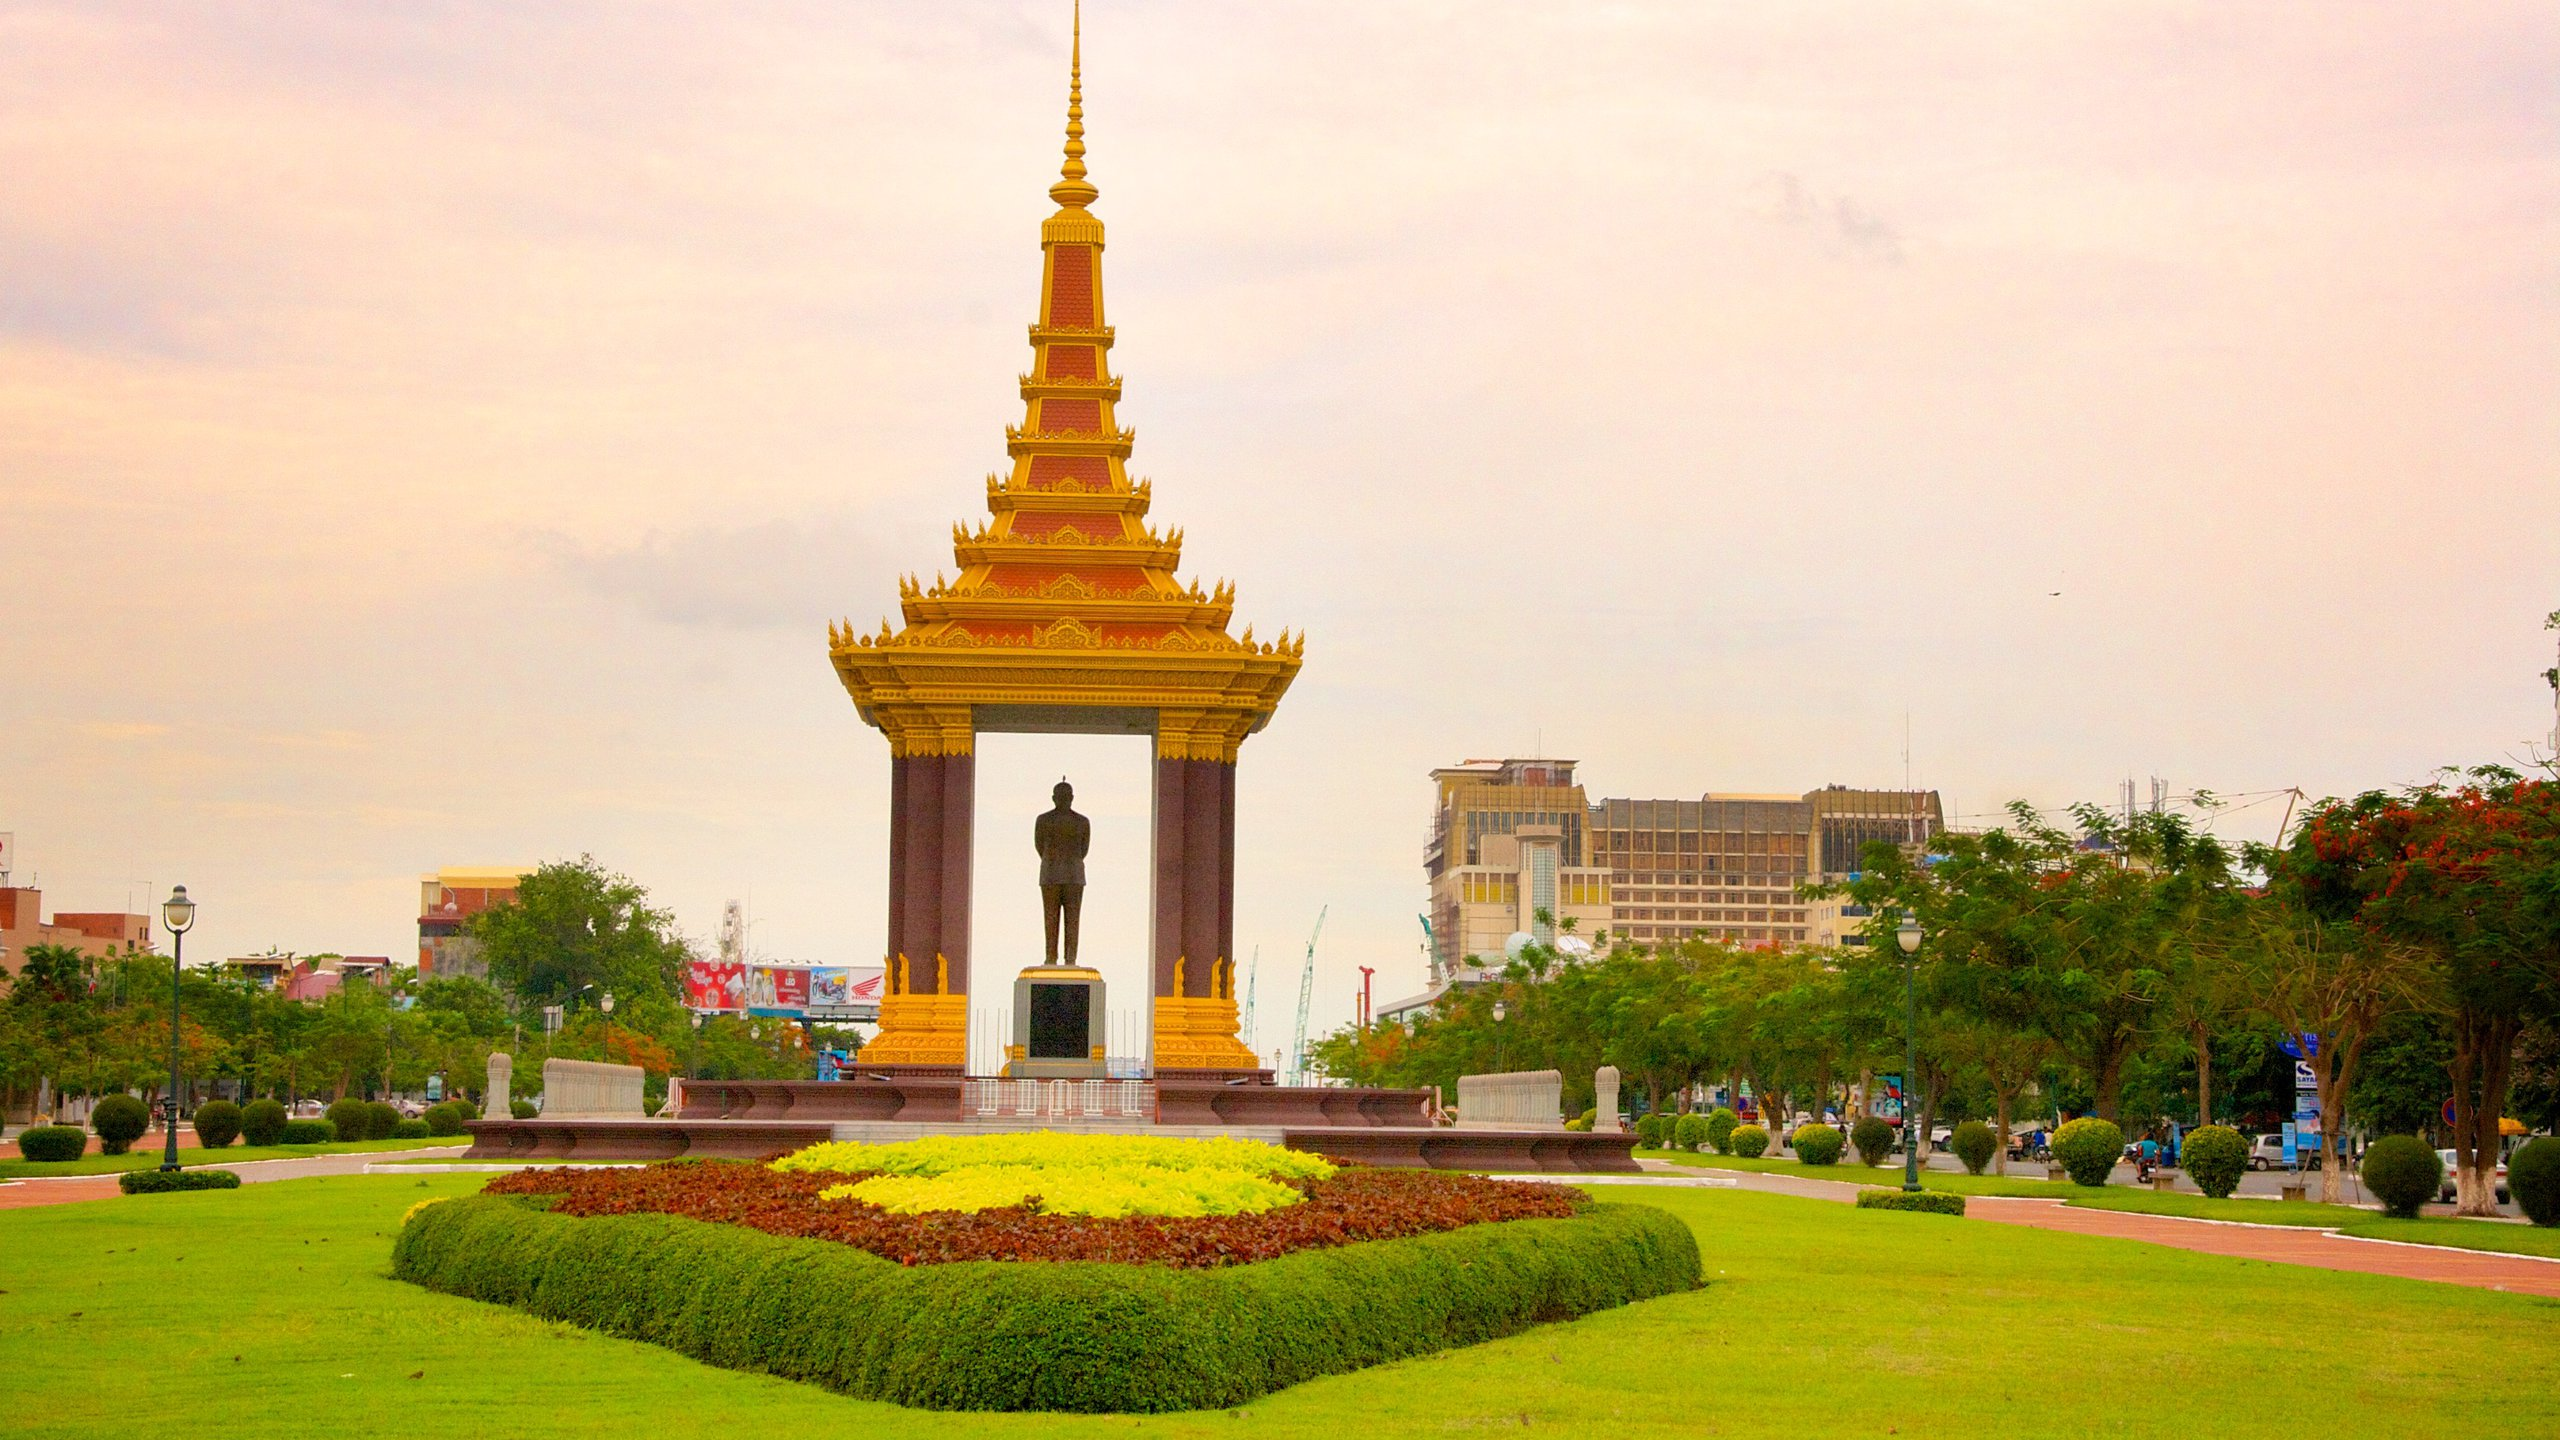 Like a massive lotus blooming from Phnom Penh's center, this monument is a touching tribute to the country's independence and to the people who made it possible.